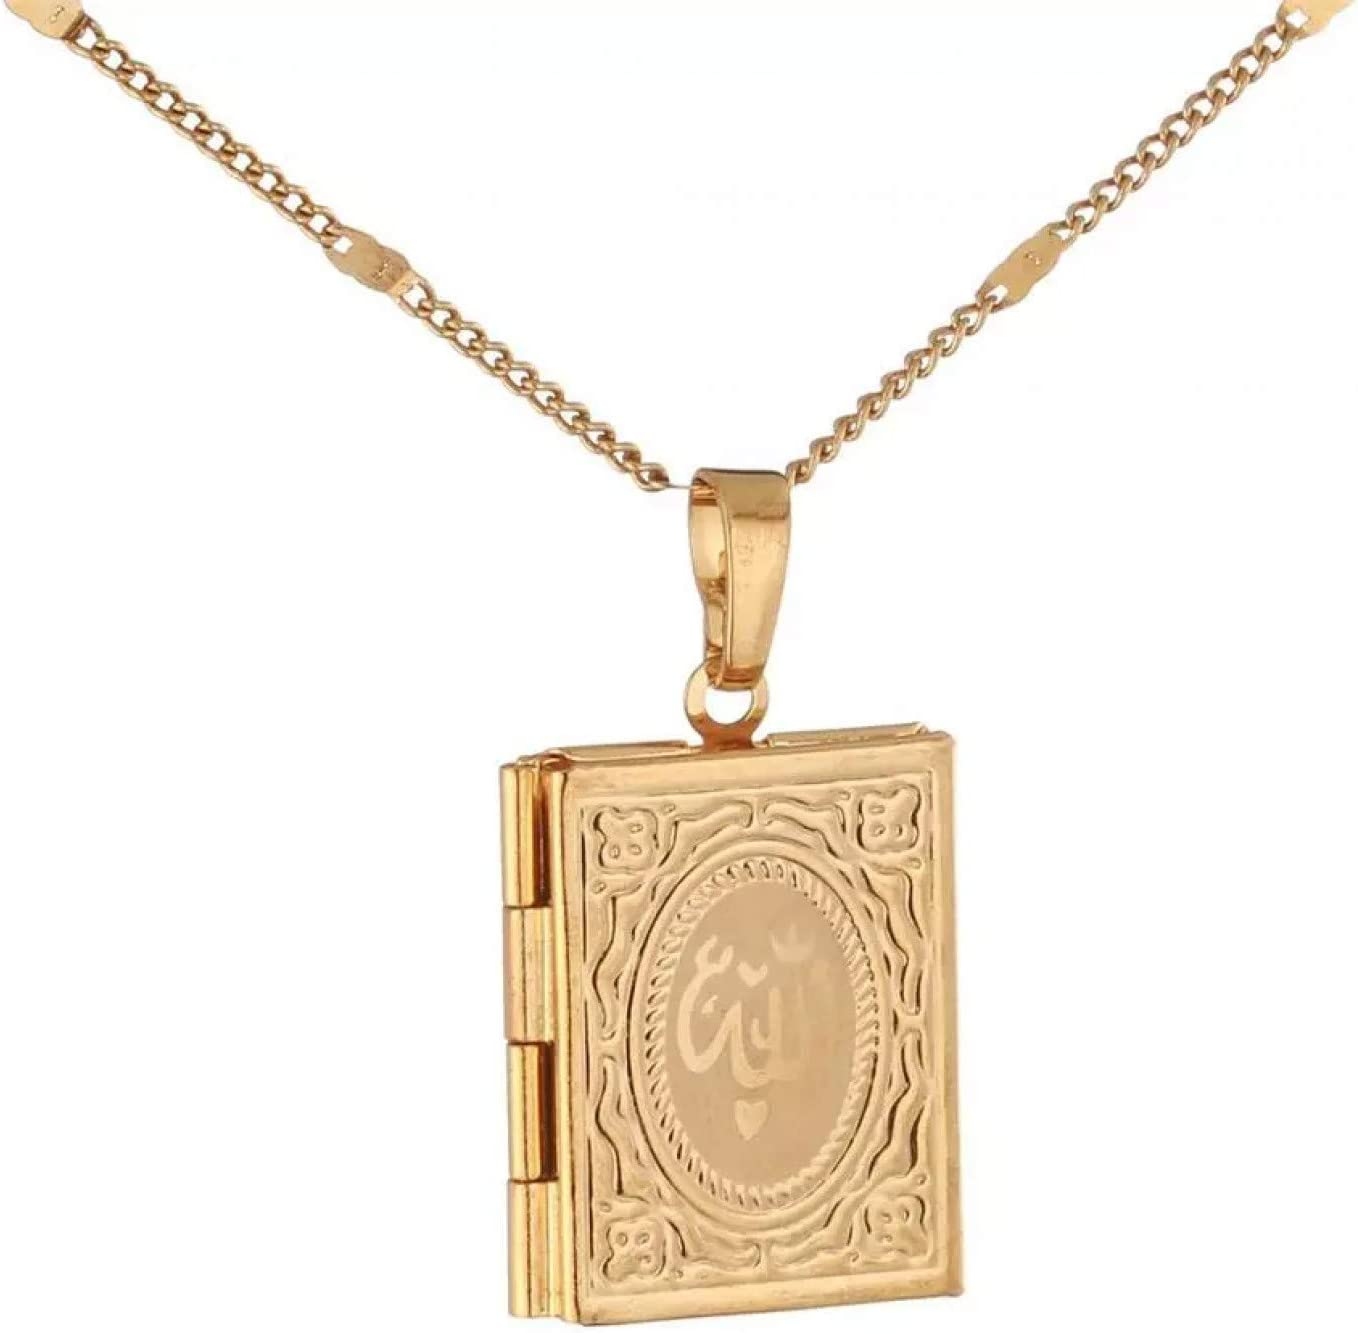 N A Necklace Pendant Gold Pendants gift Color OFFicial mail order Fashion T